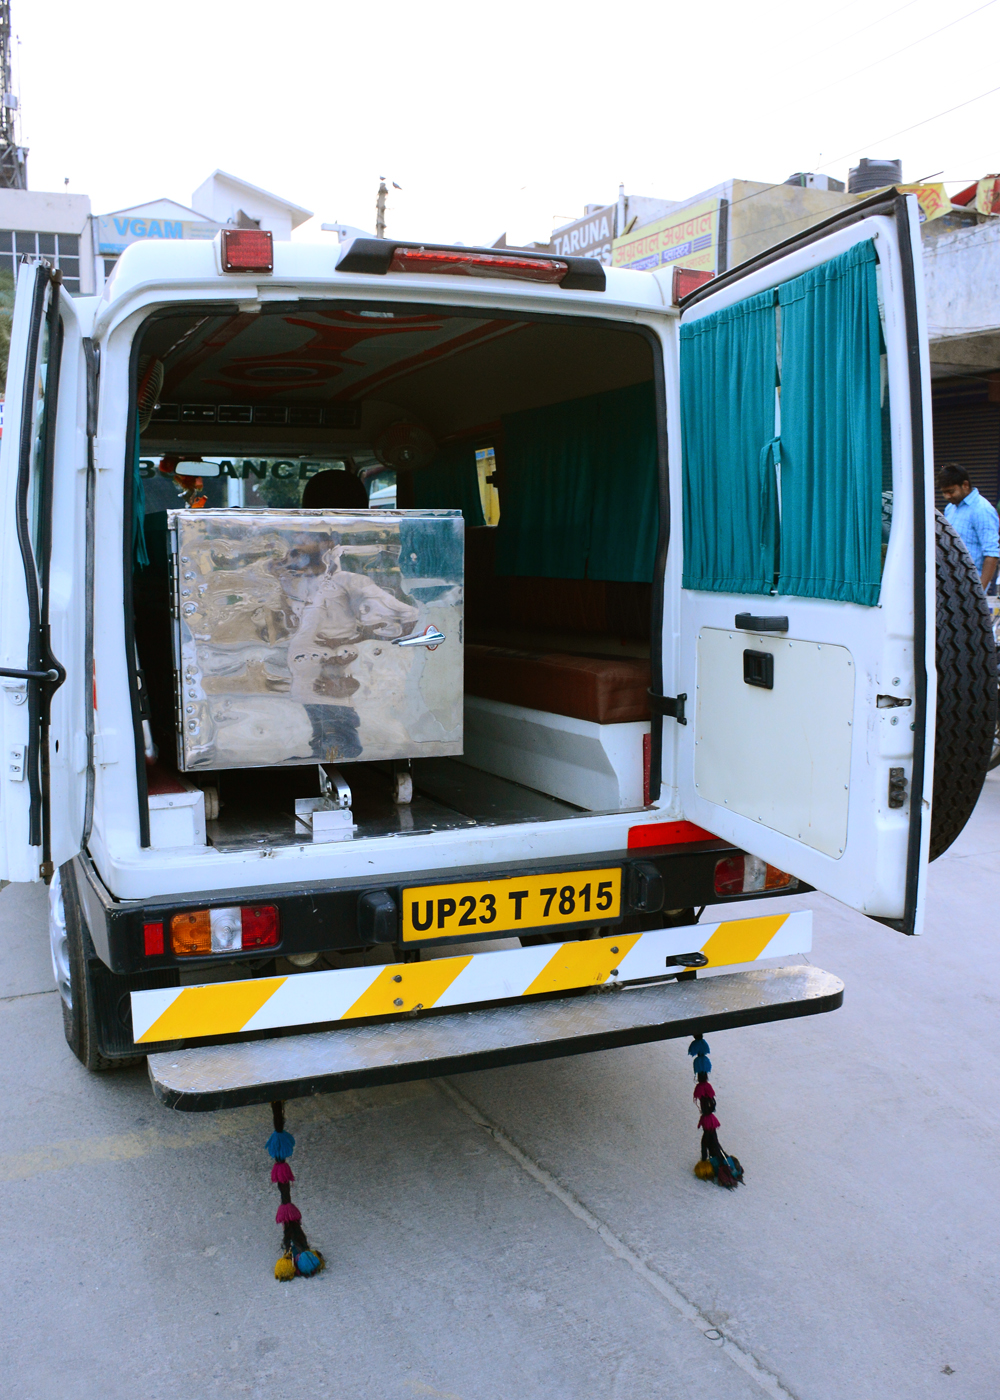 Freezer Ambulance Delhi